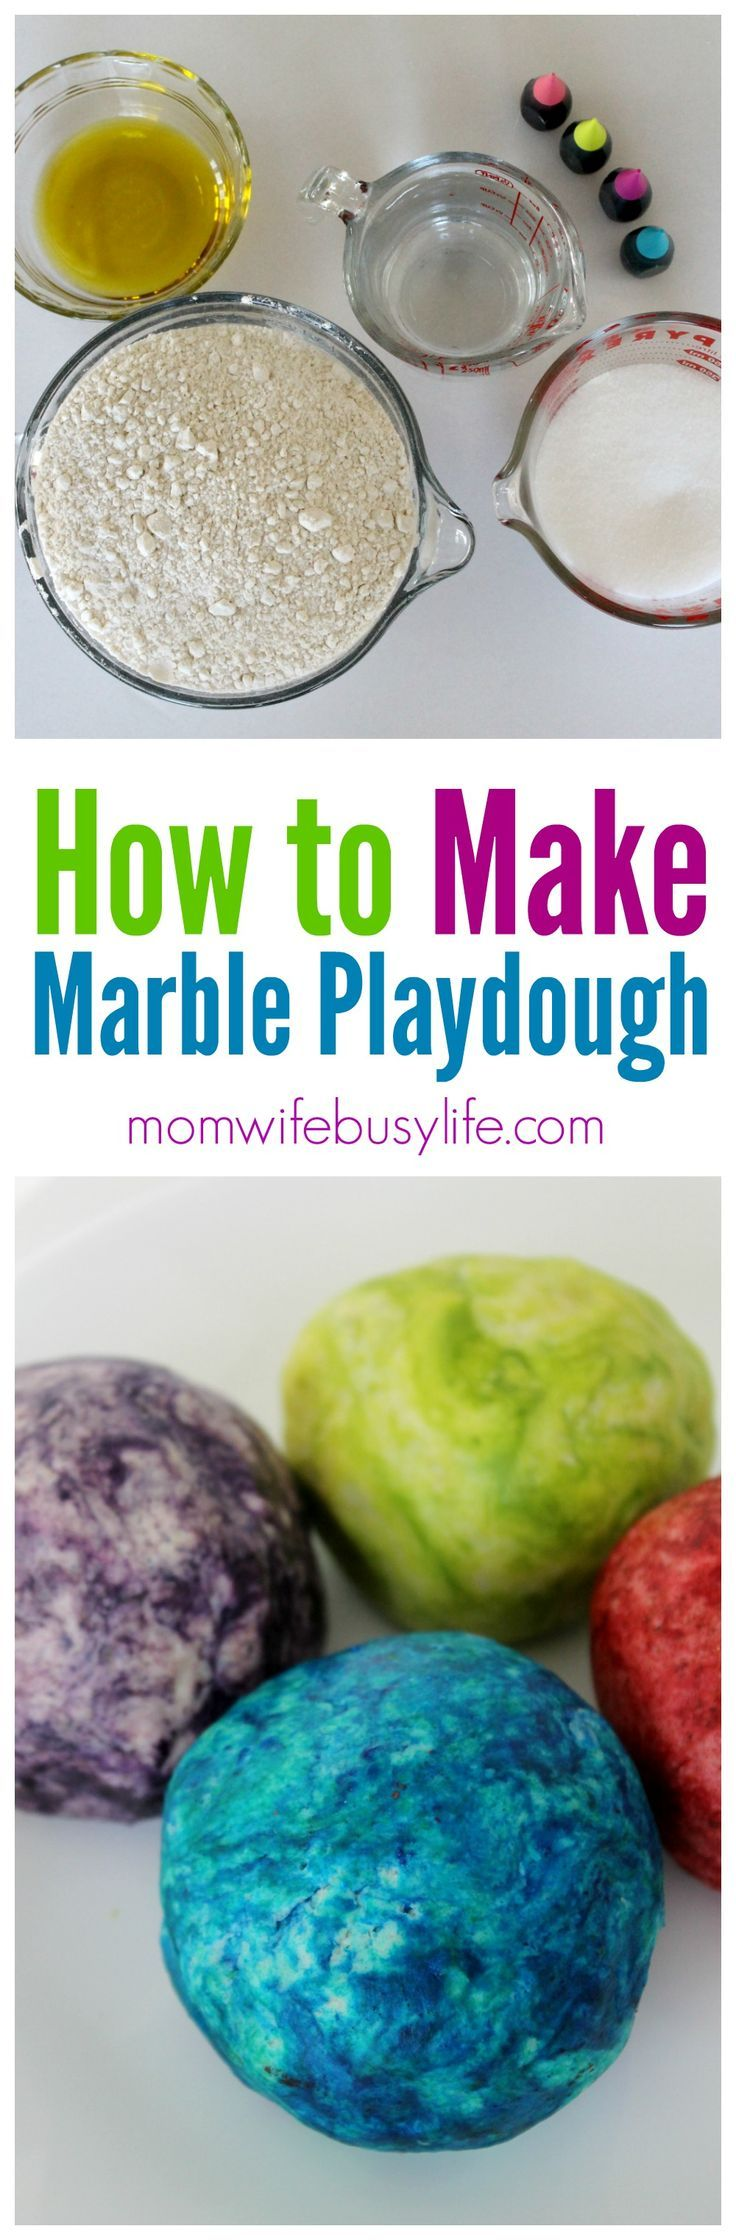 Marble Playdough Activity for Kids | DIY Playdough with Flour and Food Coloring | Make Your Own Playdough